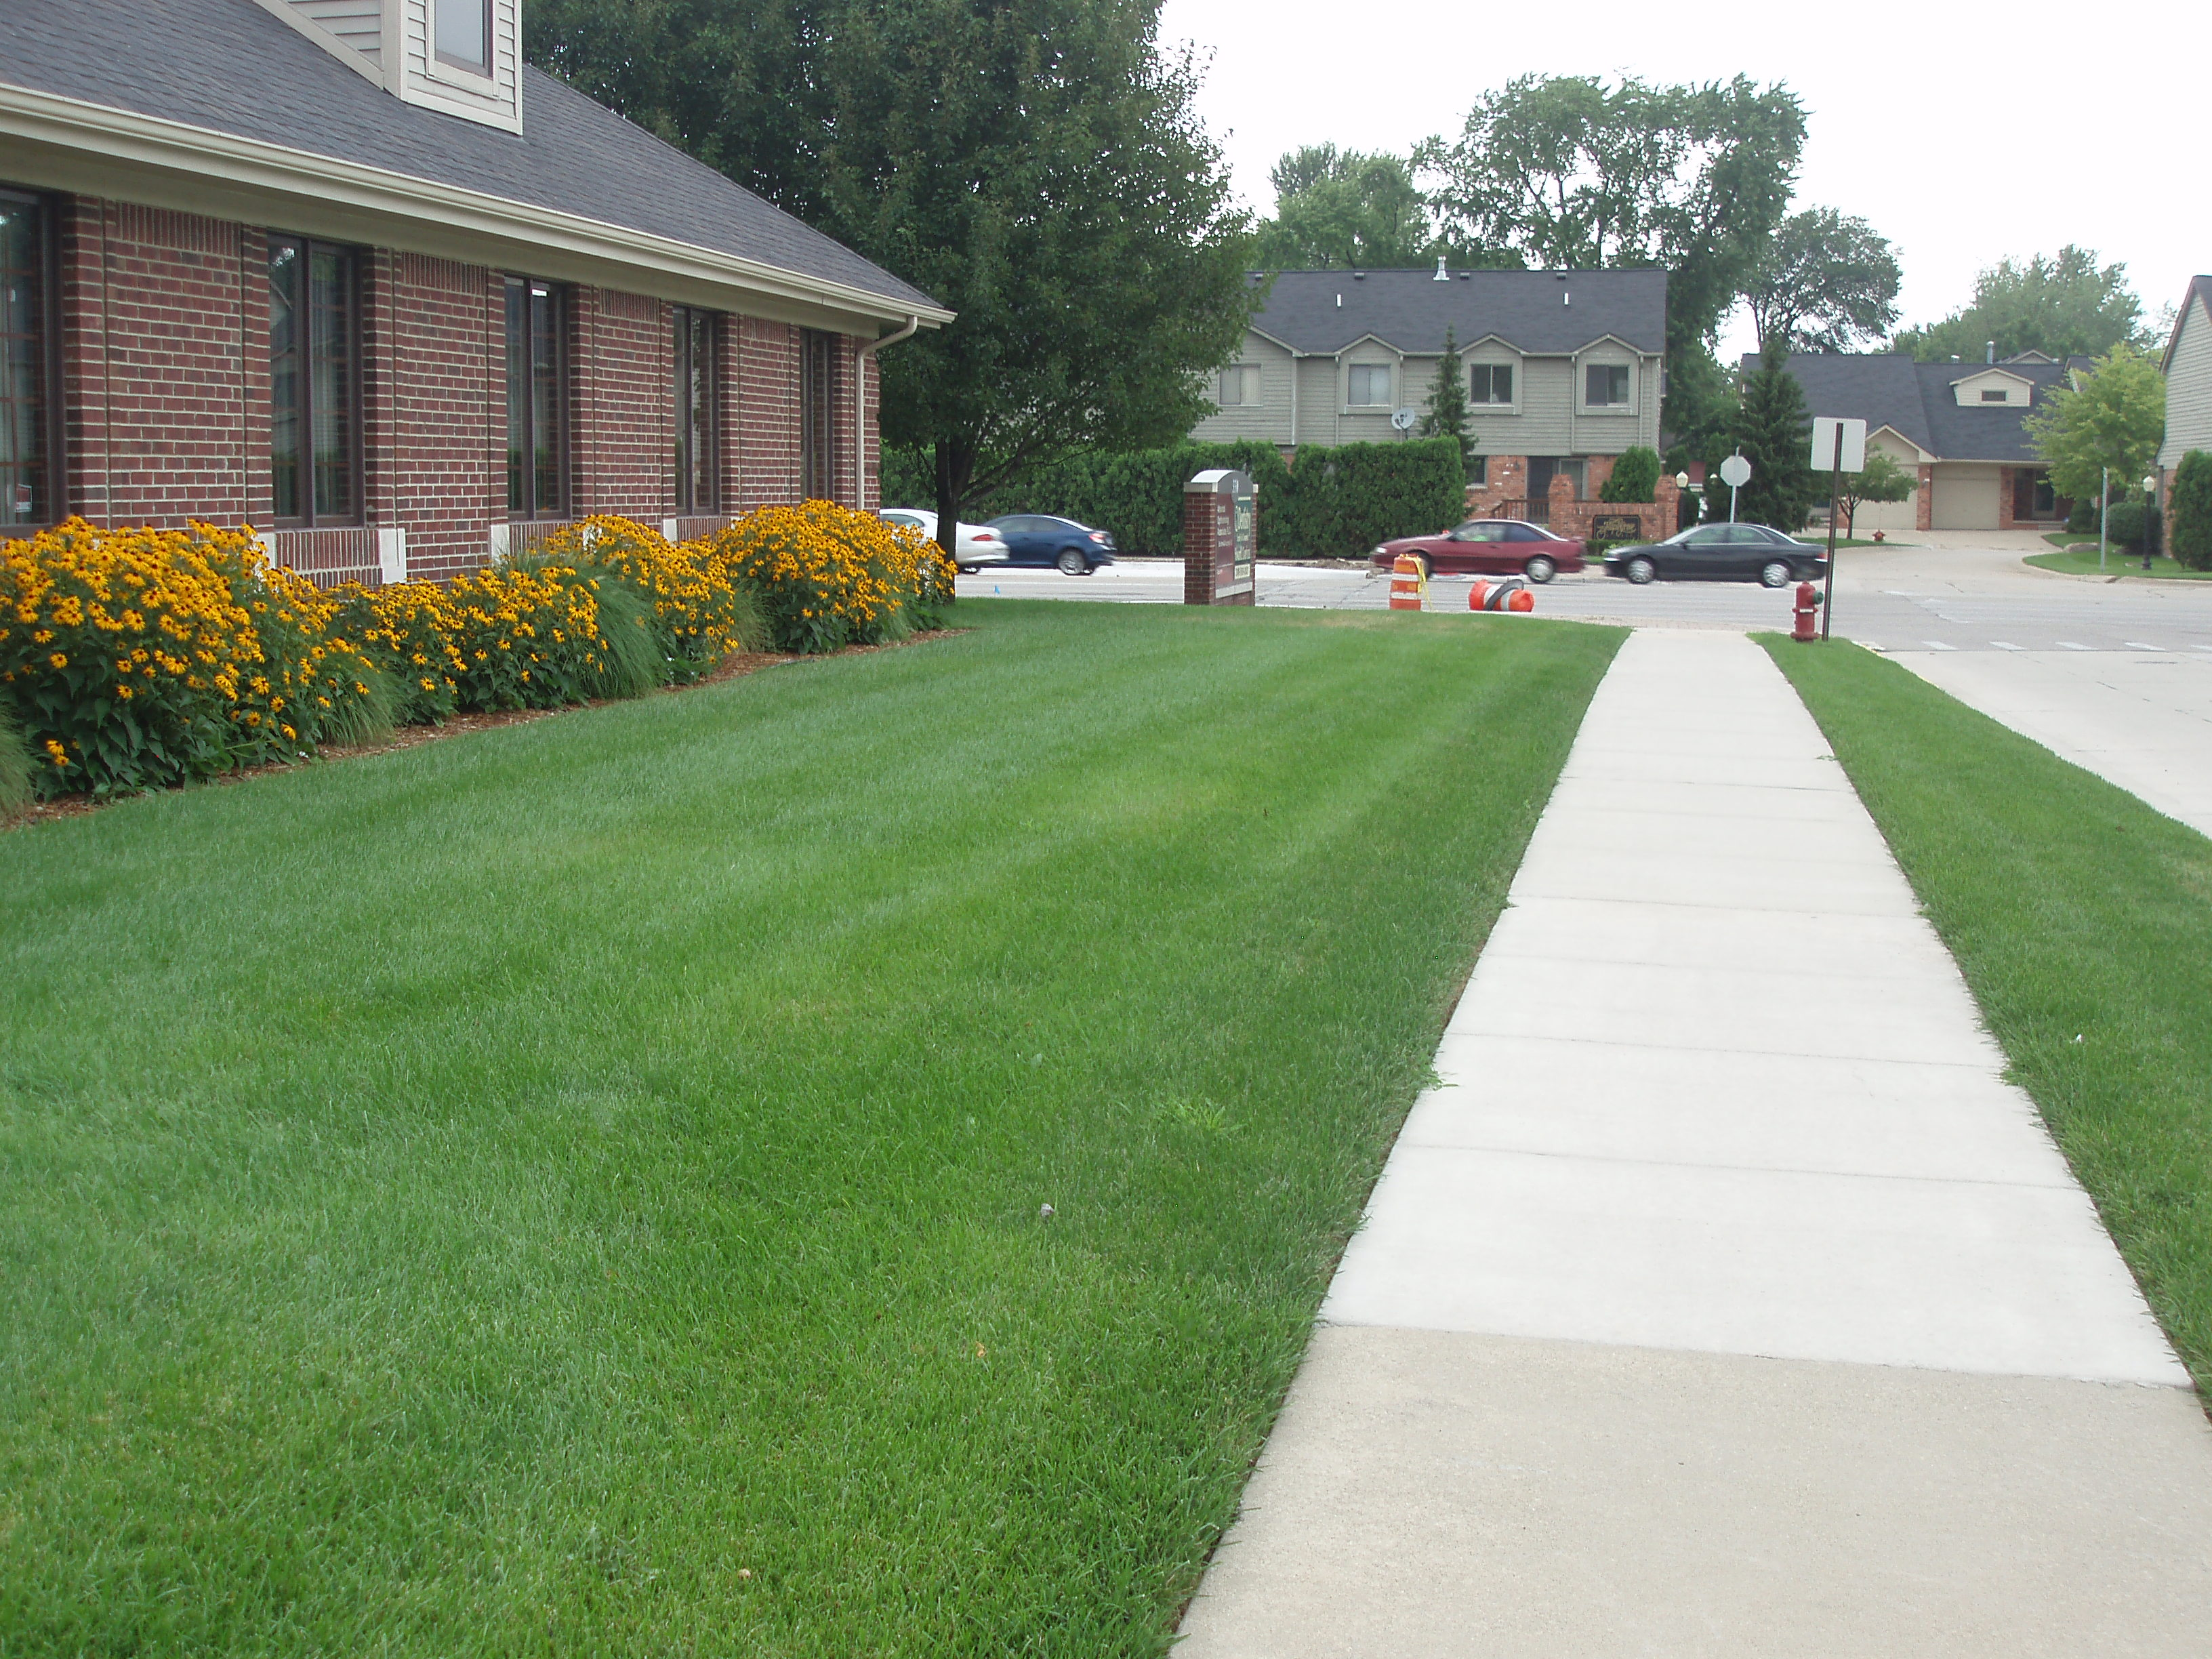 Total Lawn Care Inc.-Full Lawn Maintenance, Lawn Fertilization ...